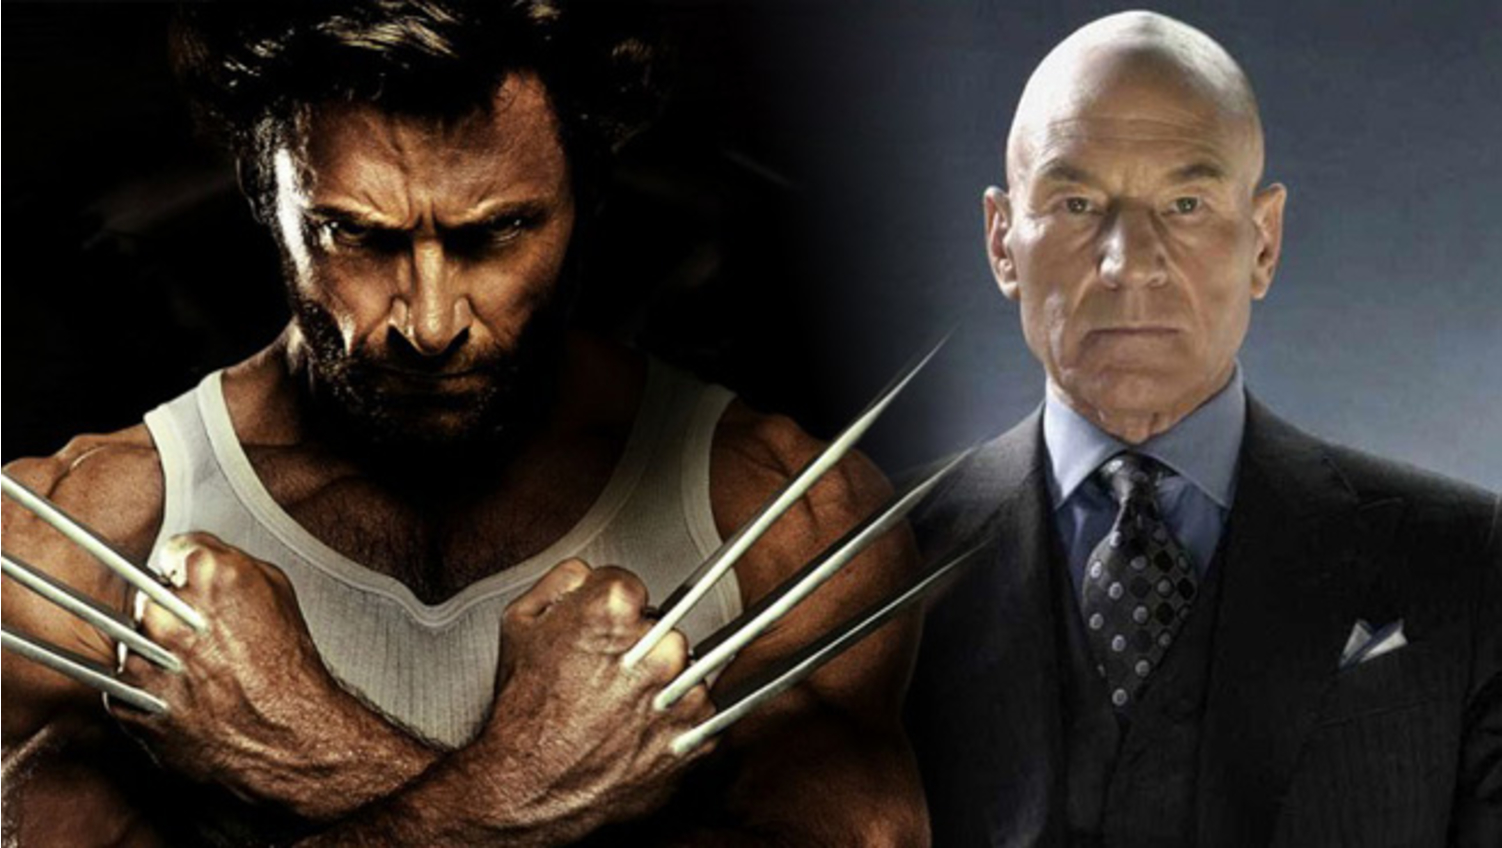 Photo of Wolverine 3 may be the last stint of Patrick Stewart as Professor X